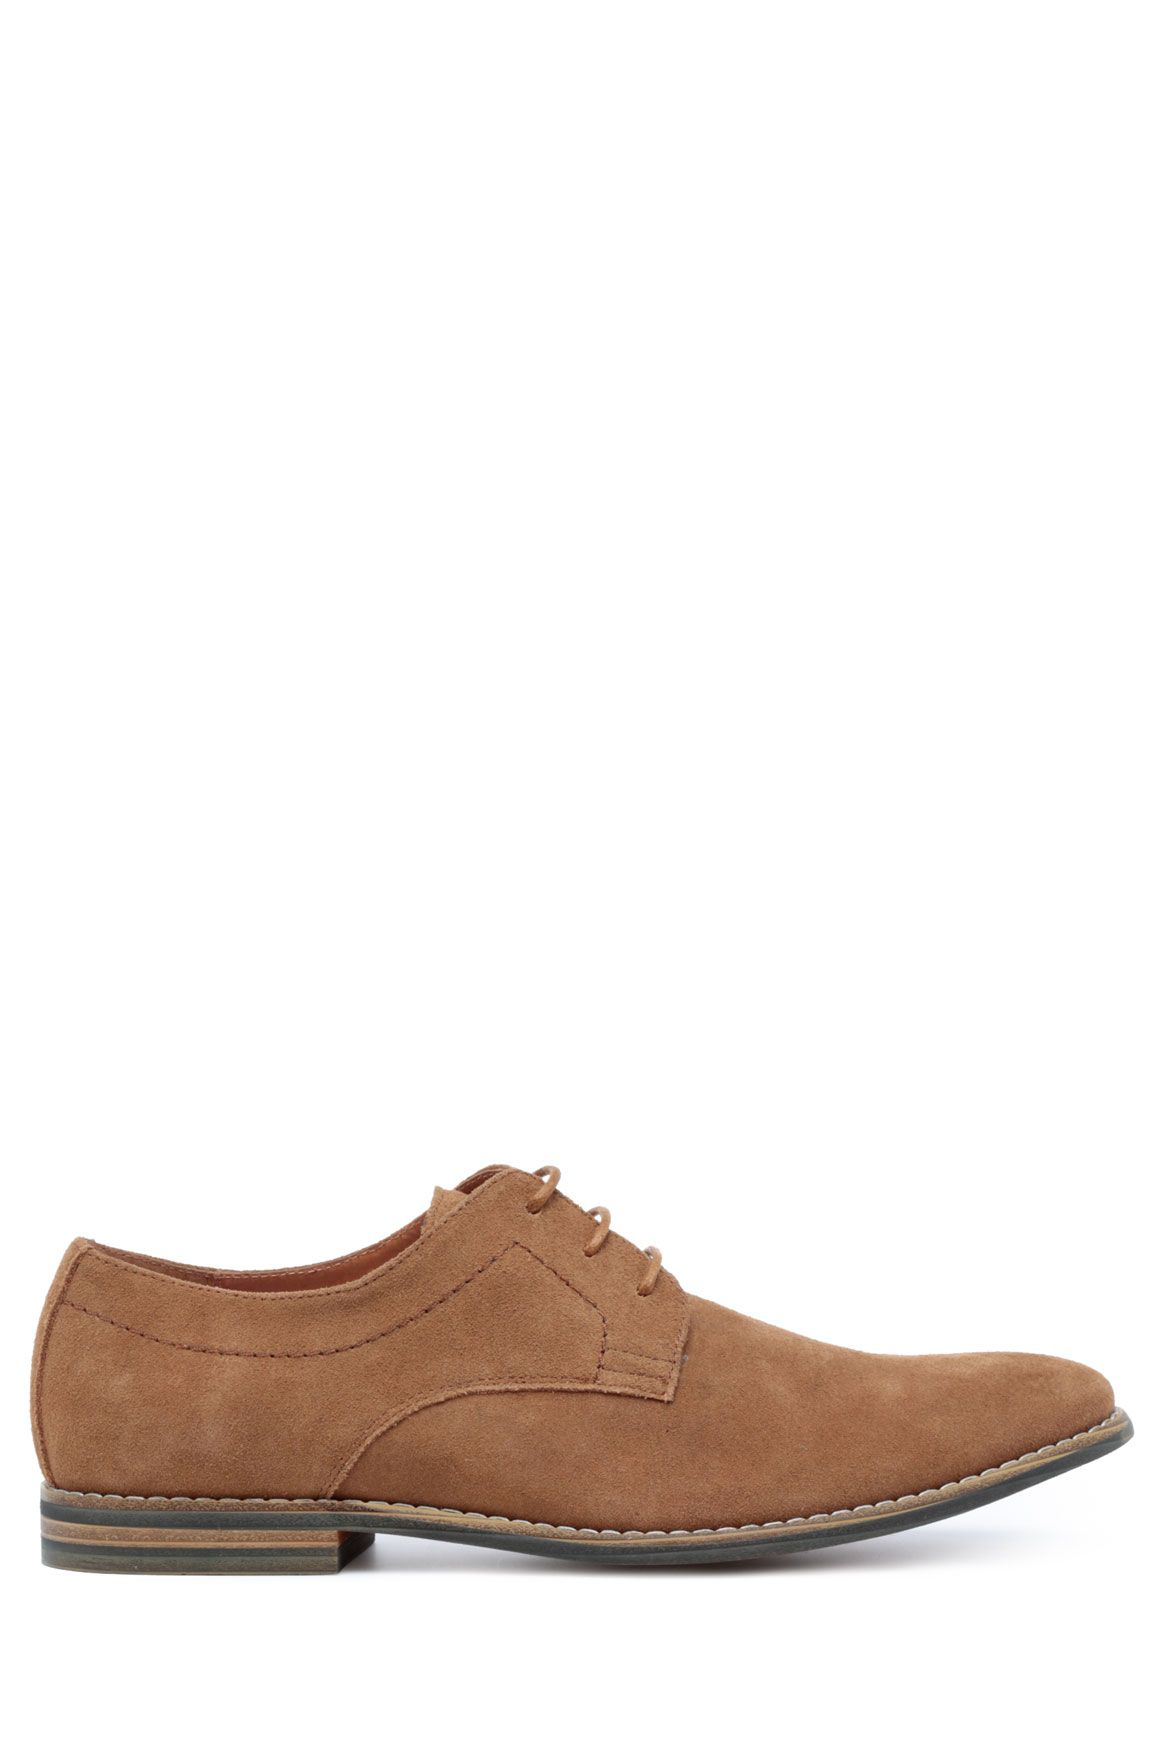 Blaq - Shane Suede Lace Up